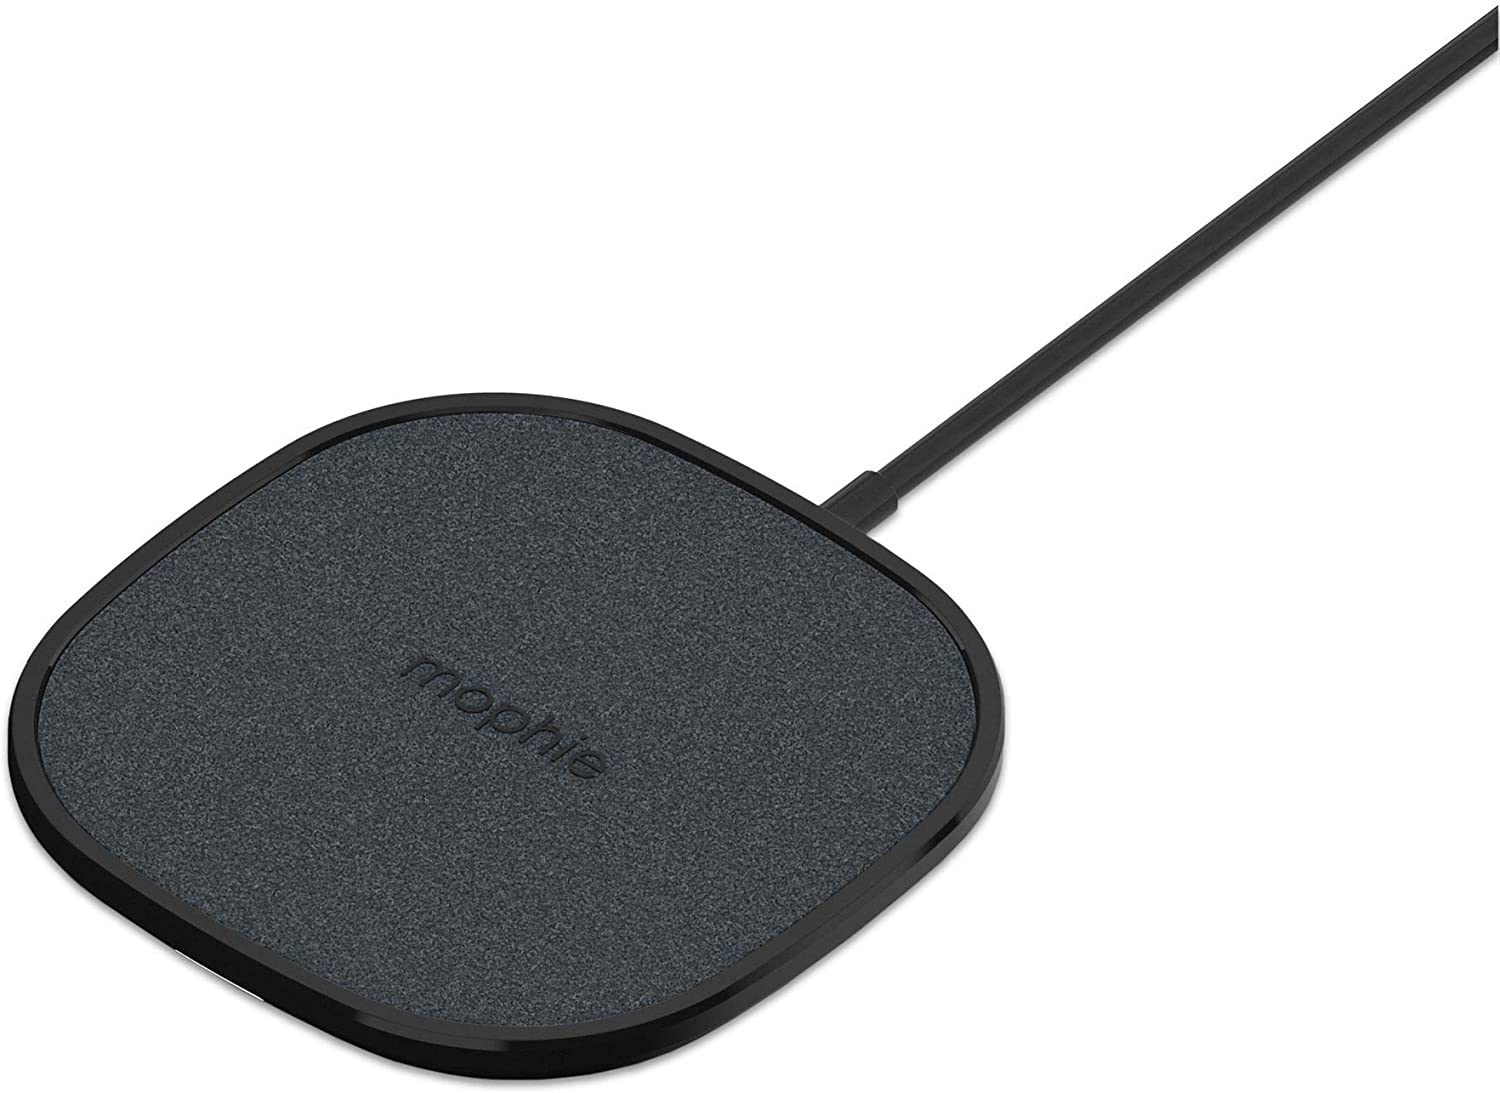 Mophie Wireless 15W Charging Pad - Made for Qi Enabled Samsung smarthones, Apple Airpods, iPhone 11 Pro Max/XS Max, iPhone 11 Pro/XS, iPhone 11 / XR and Other Qi-Enabled Devices - Black (401305902)